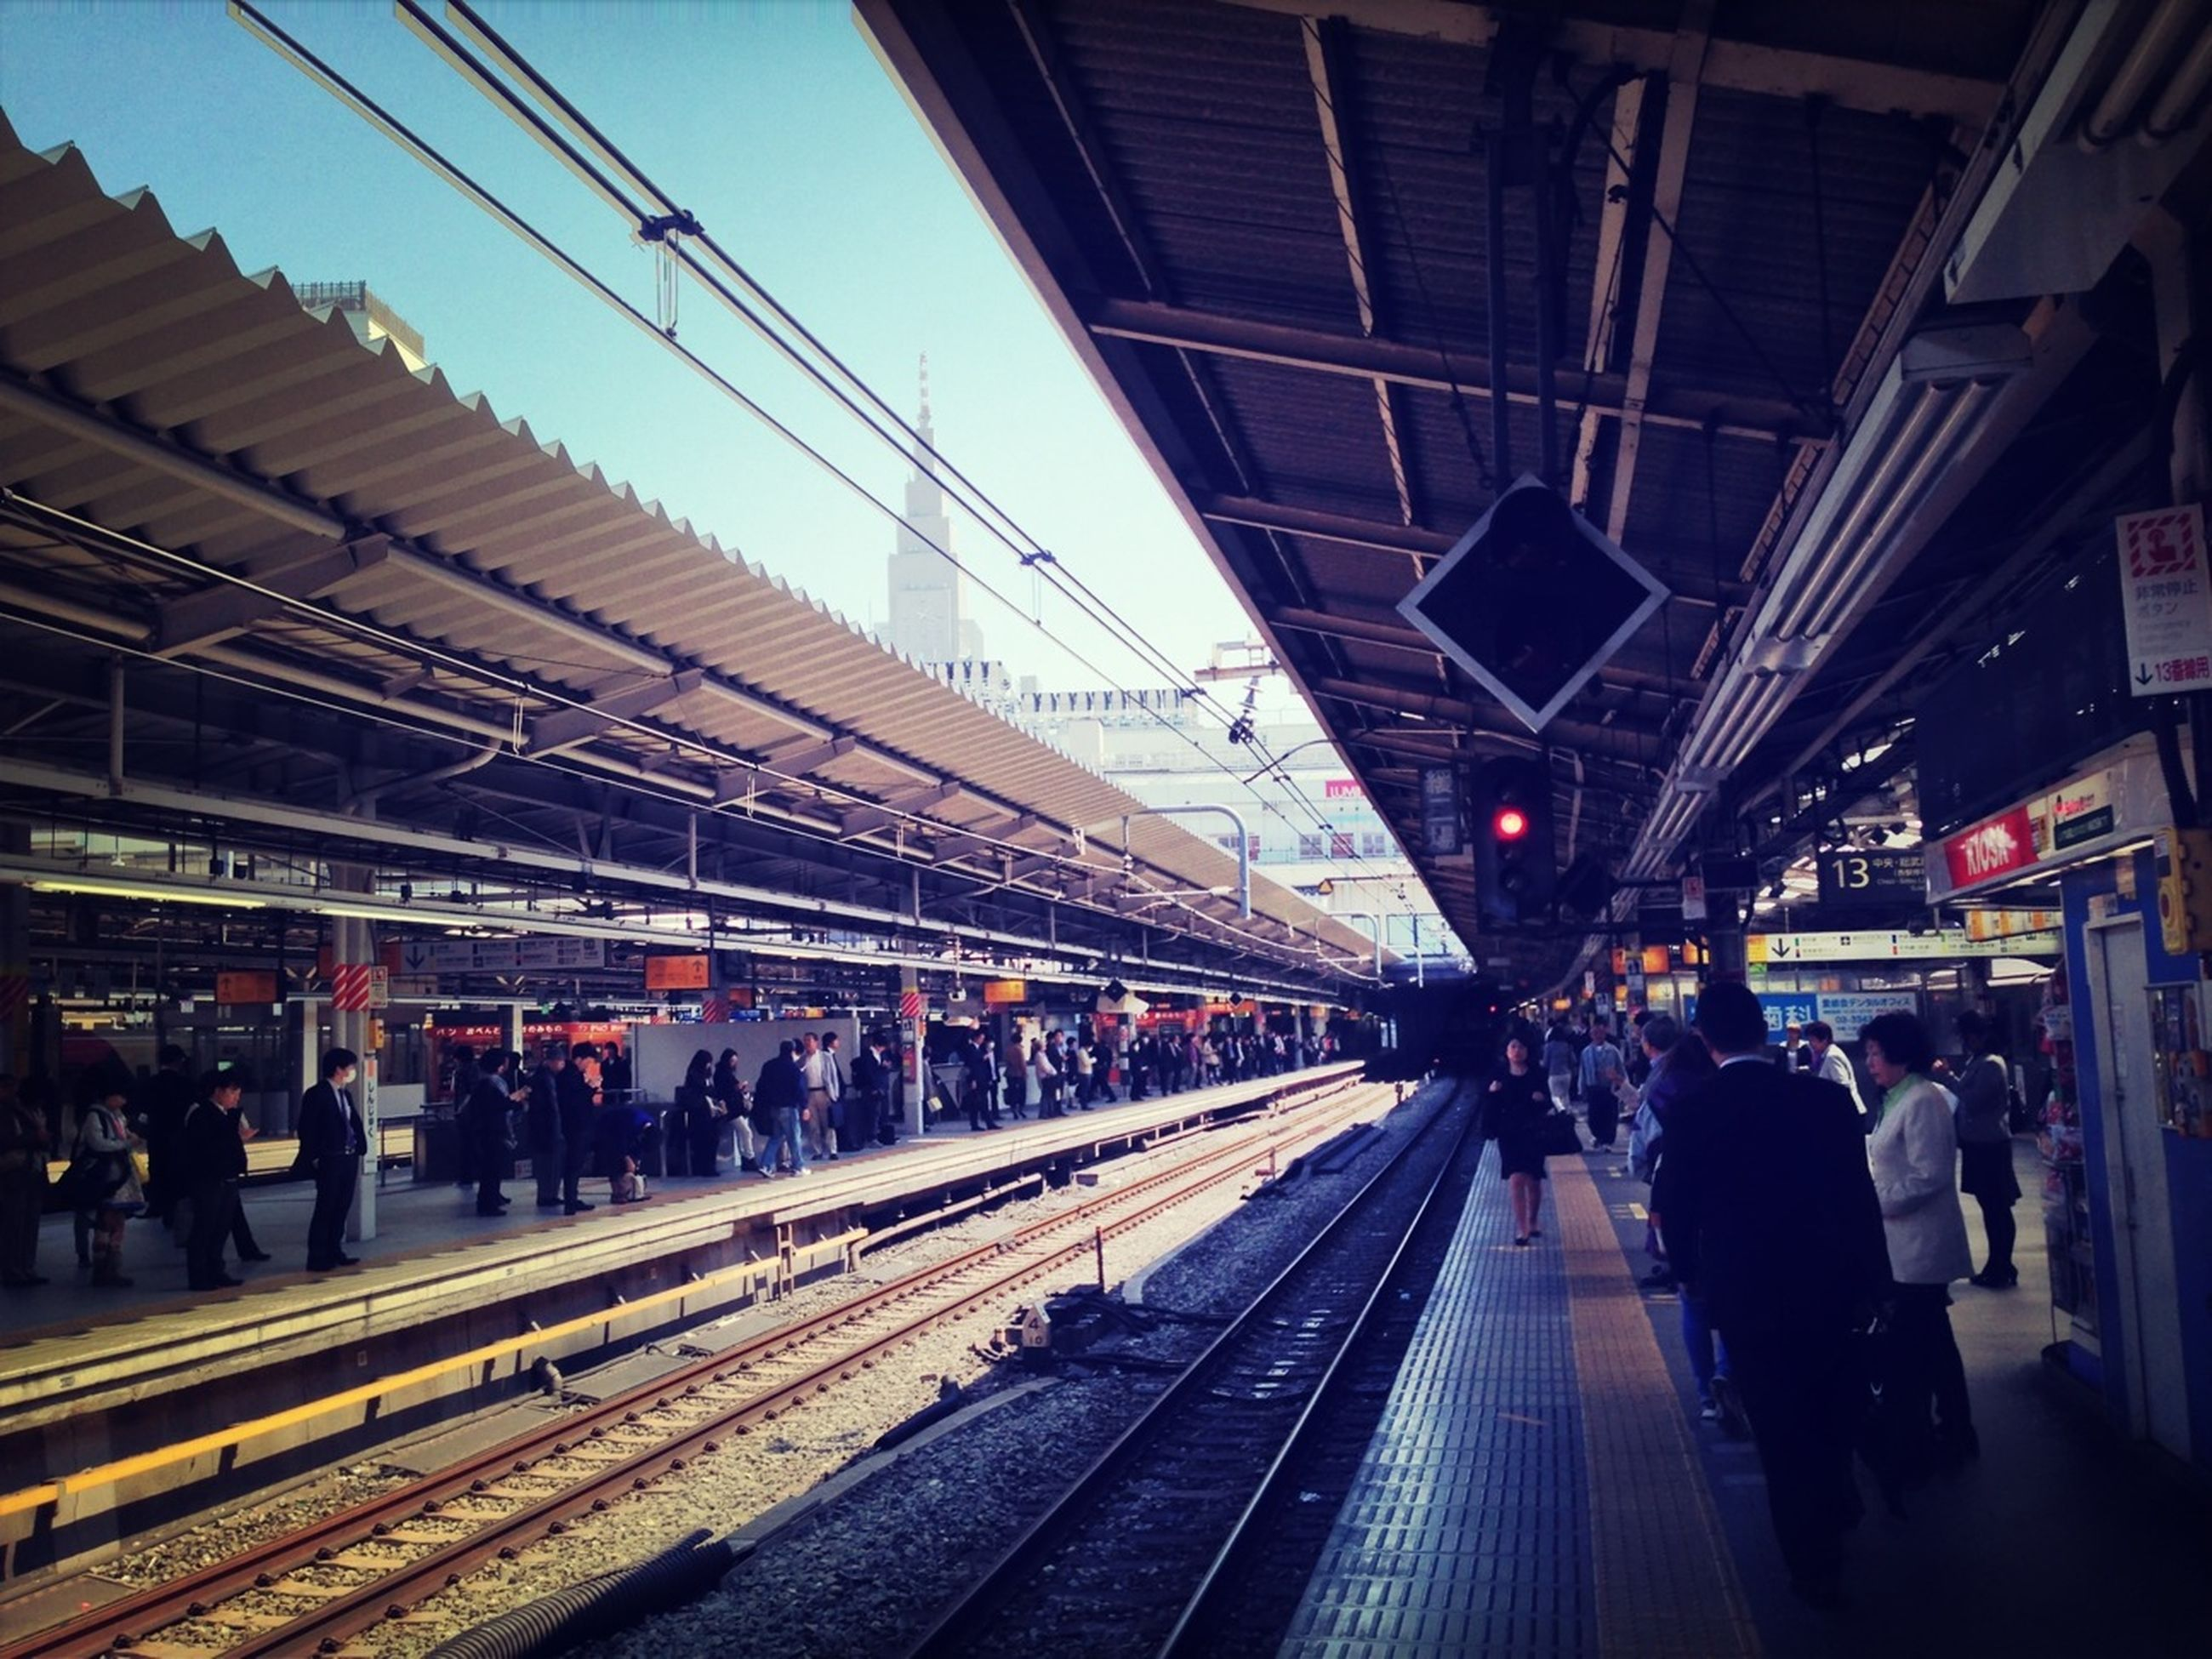 railroad station, large group of people, railroad track, railroad station platform, public transportation, rail transportation, transportation, indoors, person, illuminated, men, city life, built structure, lifestyles, architecture, ceiling, travel, passenger, transportation building - type of building